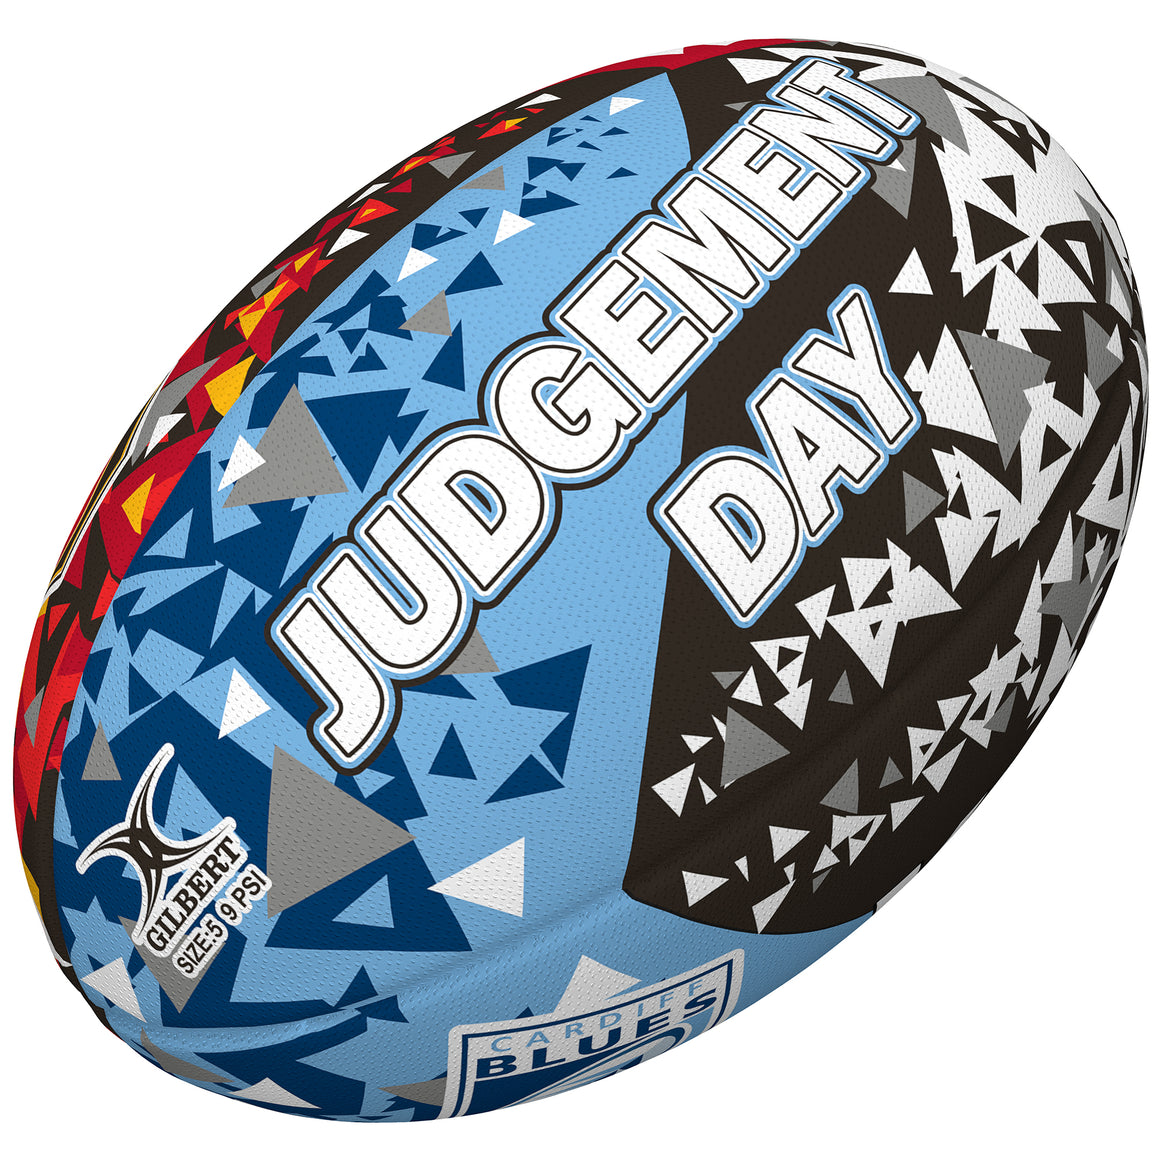 Judgement Day Rugby Ball